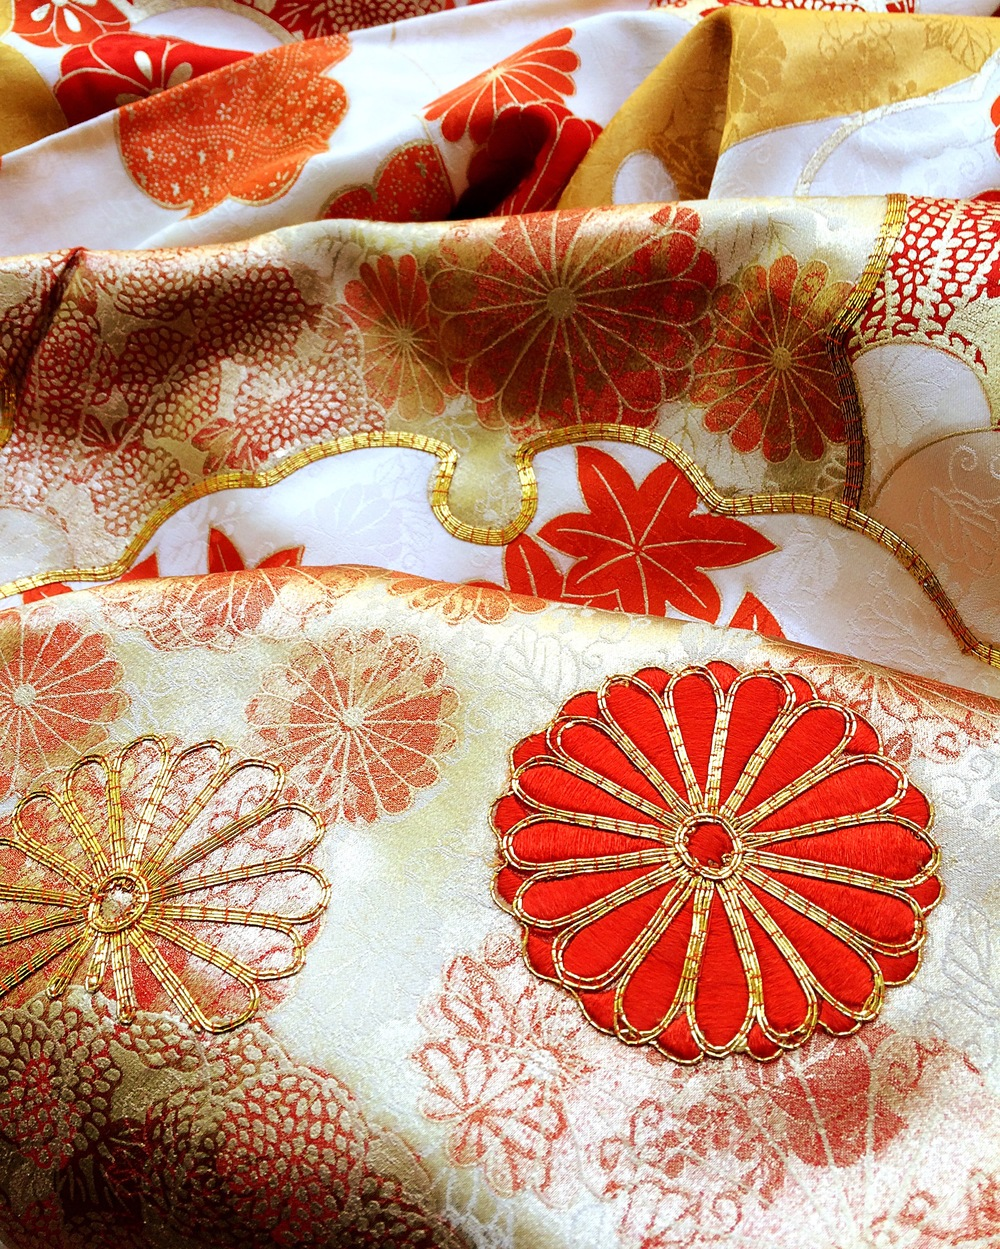 Vintage furisode kimono with heavy embroidery.